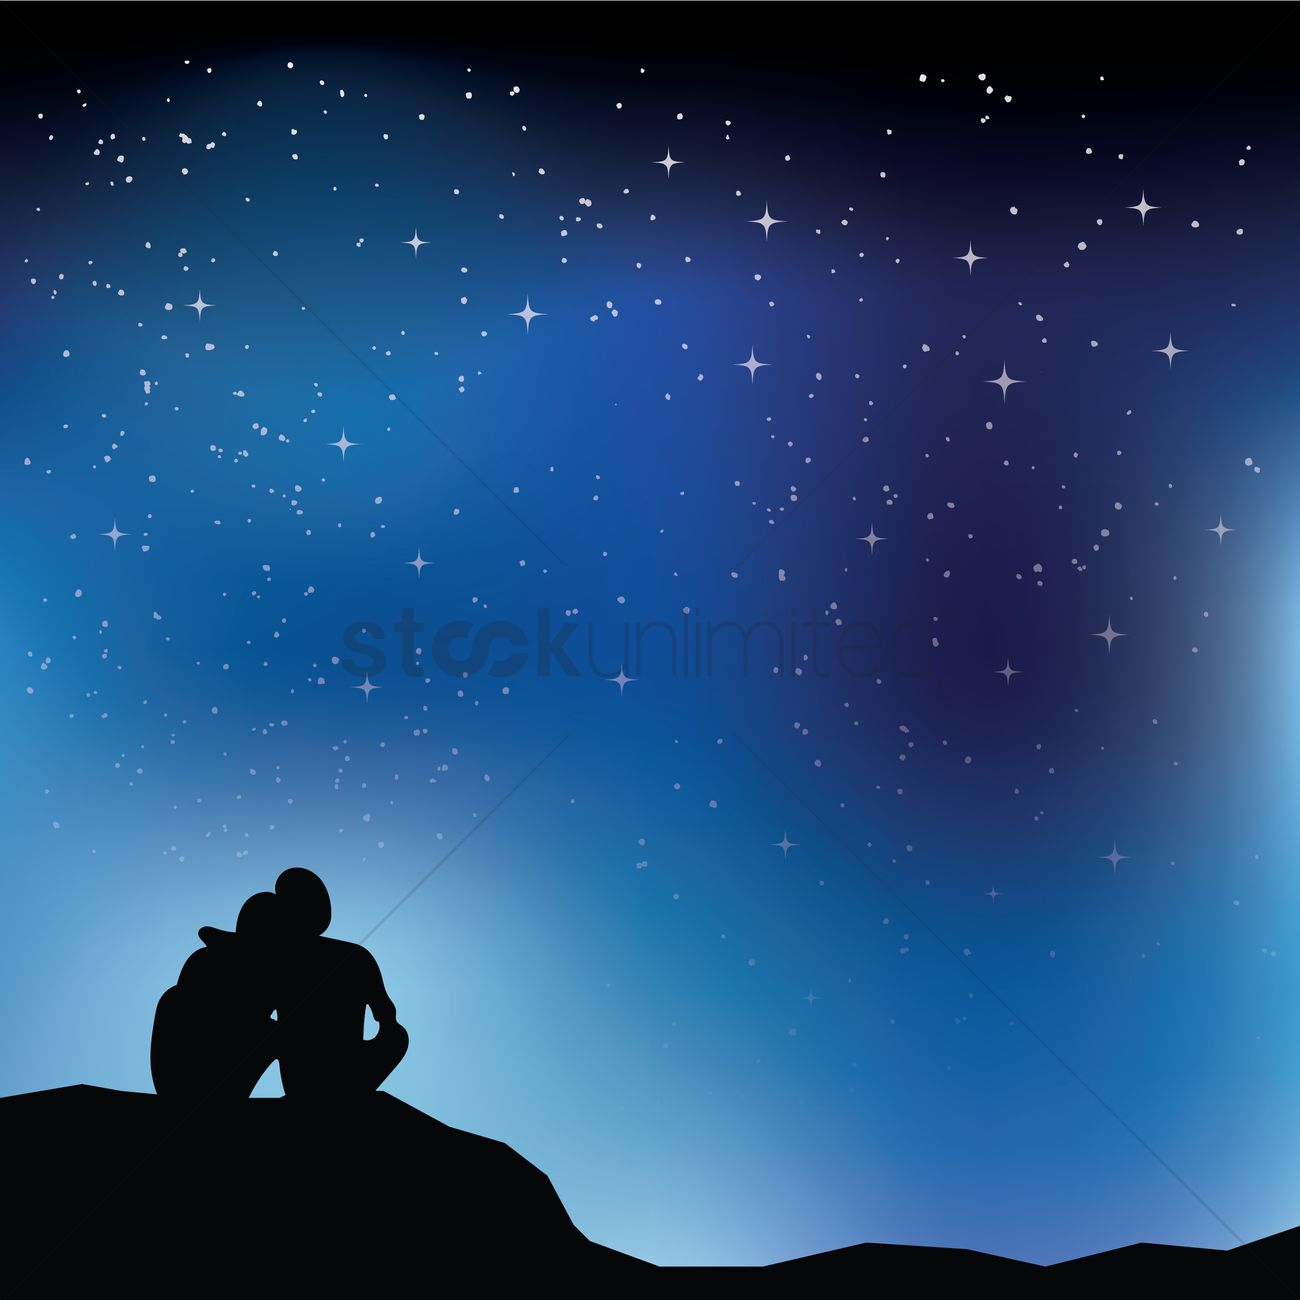 Free Fall Wallpaper With Animals Couple Looking At Stars Vector Image 1540114